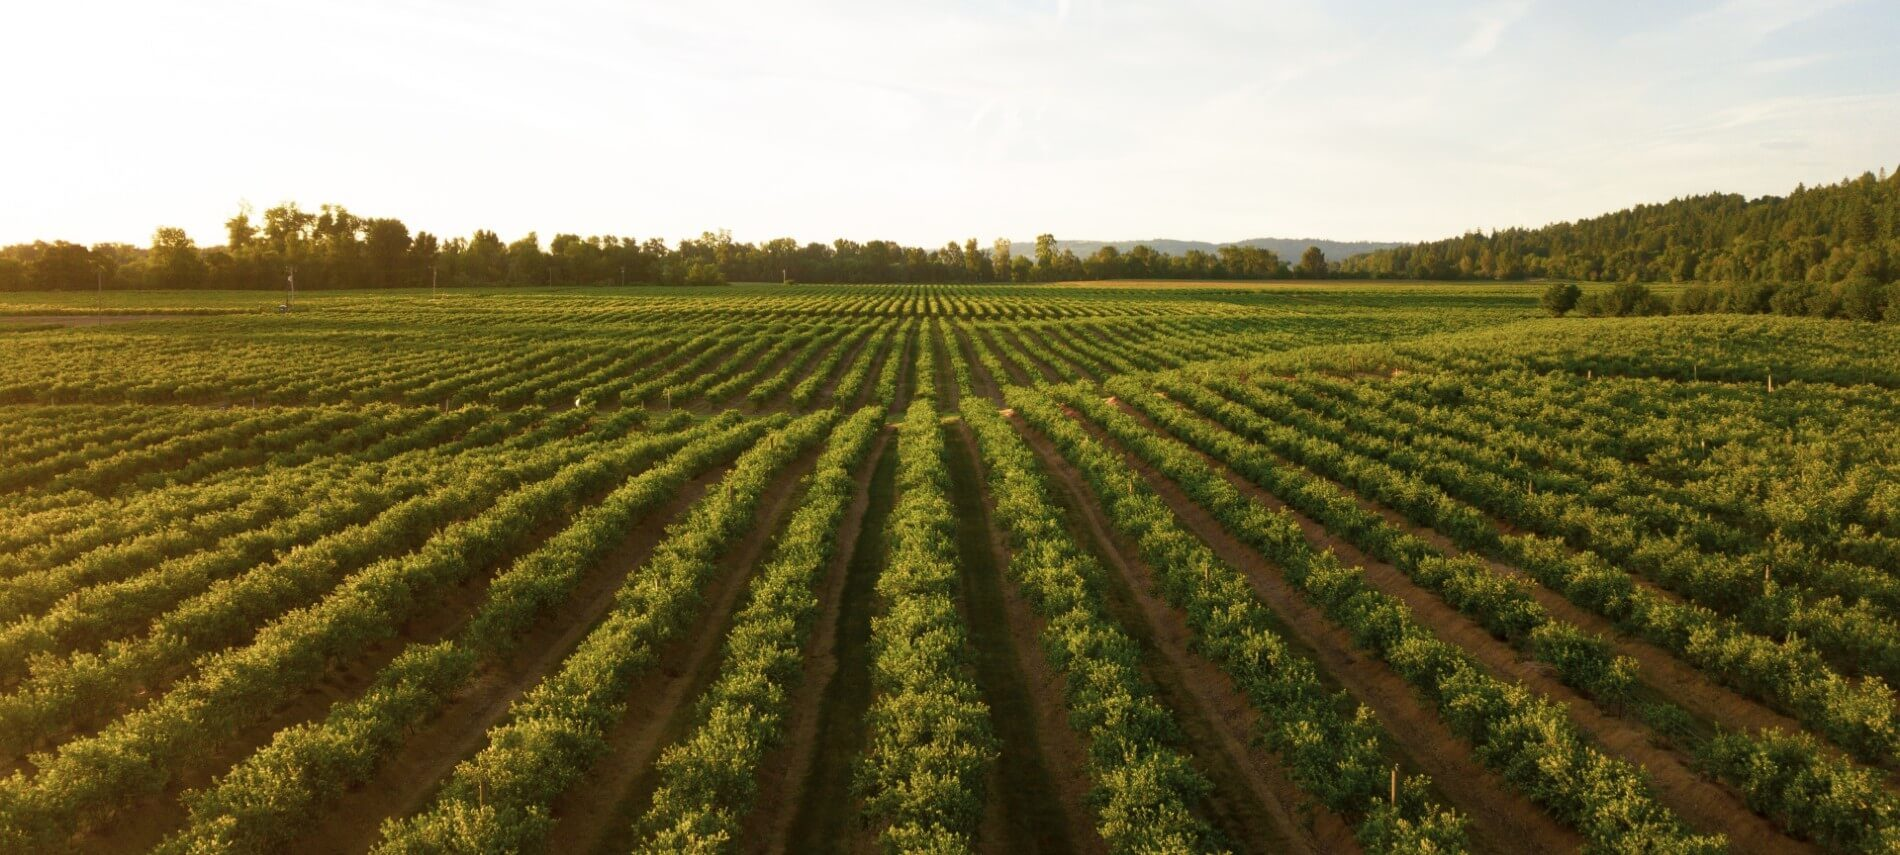 Wide open vineyard with row upon row of green trees under a blue sky